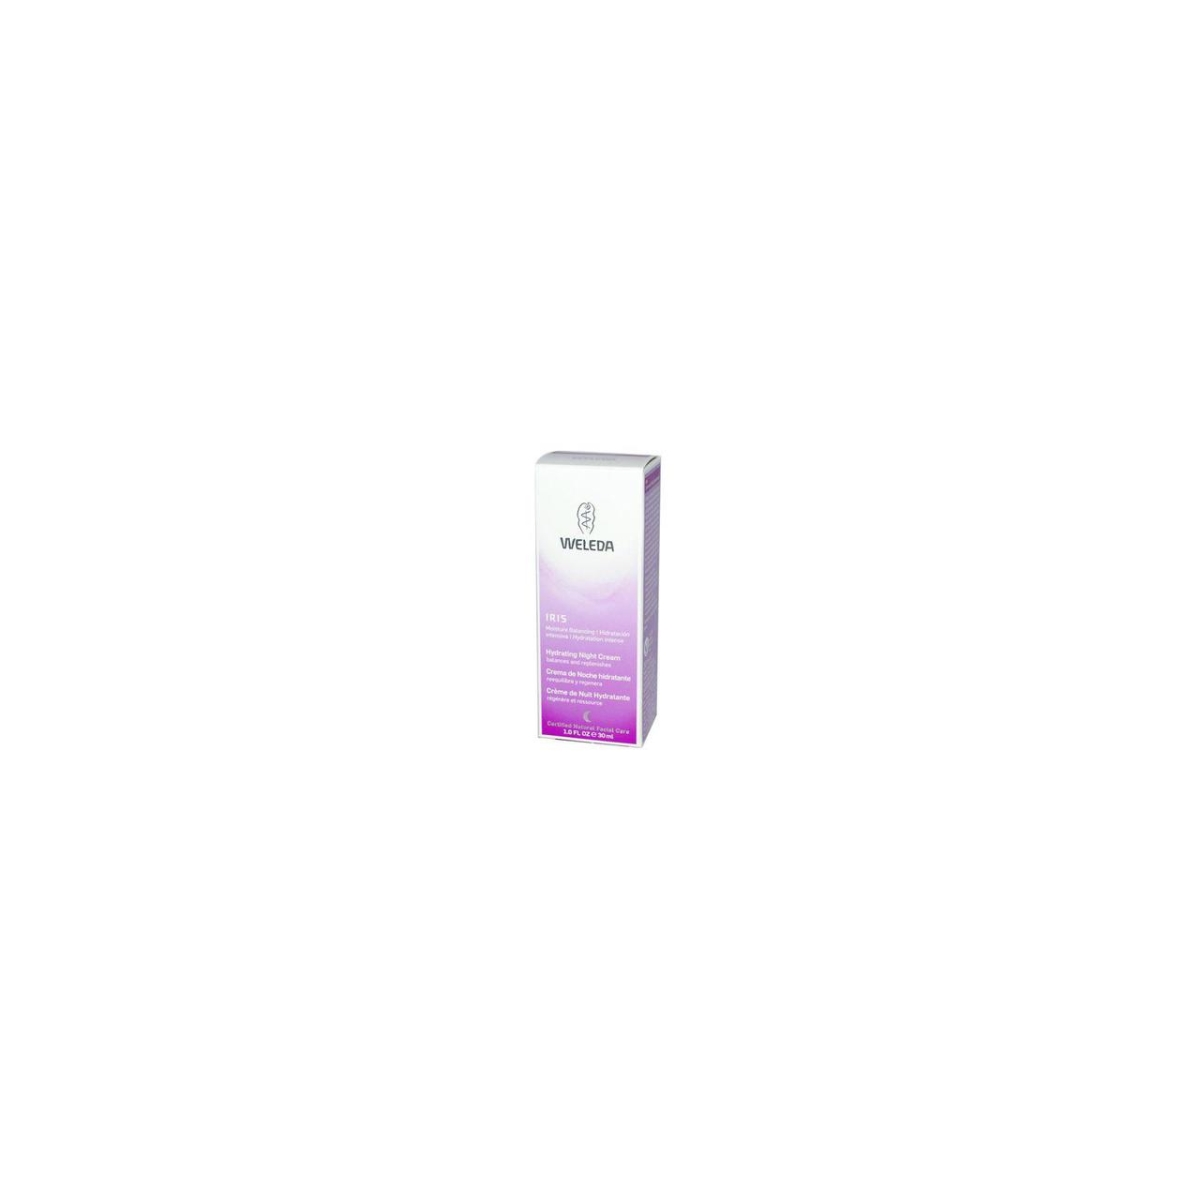 Weleda HG0644062 1 fl oz Night Cream Iris